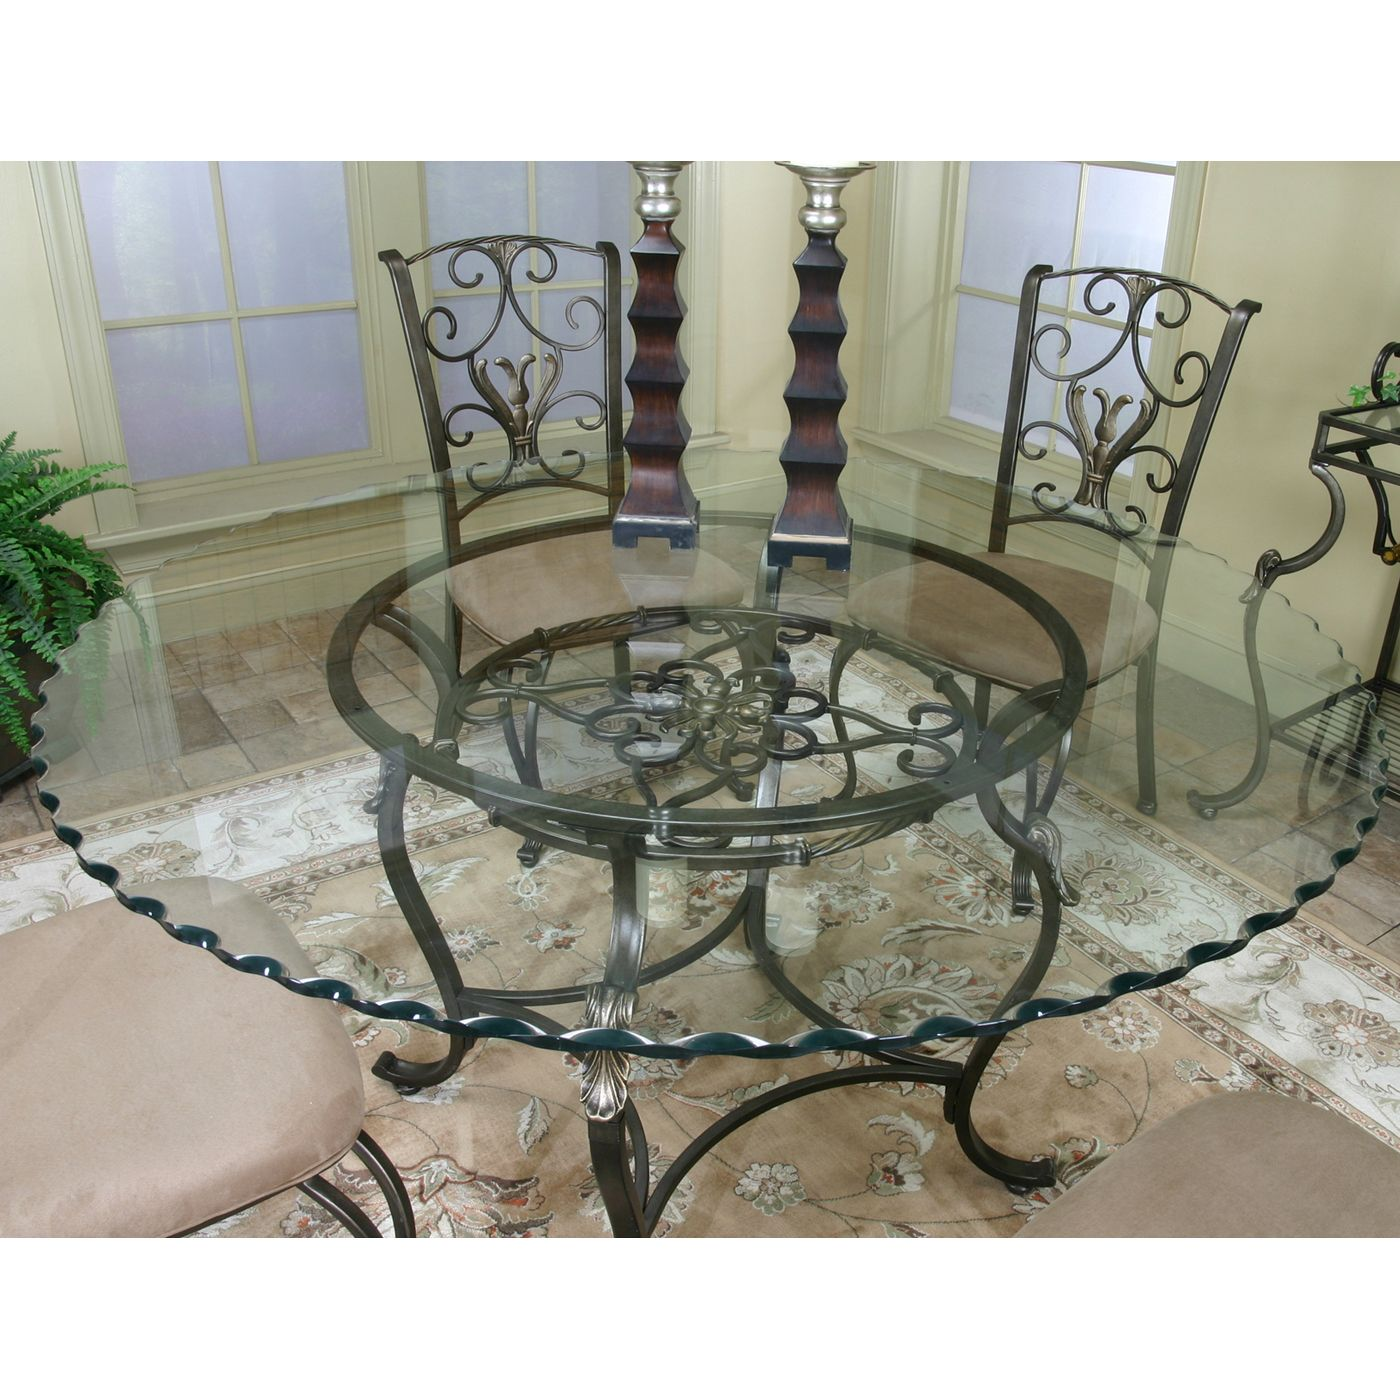 Cramco J9811 4 Wescot Round Glass Top Dining Table Wrought Iron Dining Table Glass Dinning Table Glass Top Dining Table